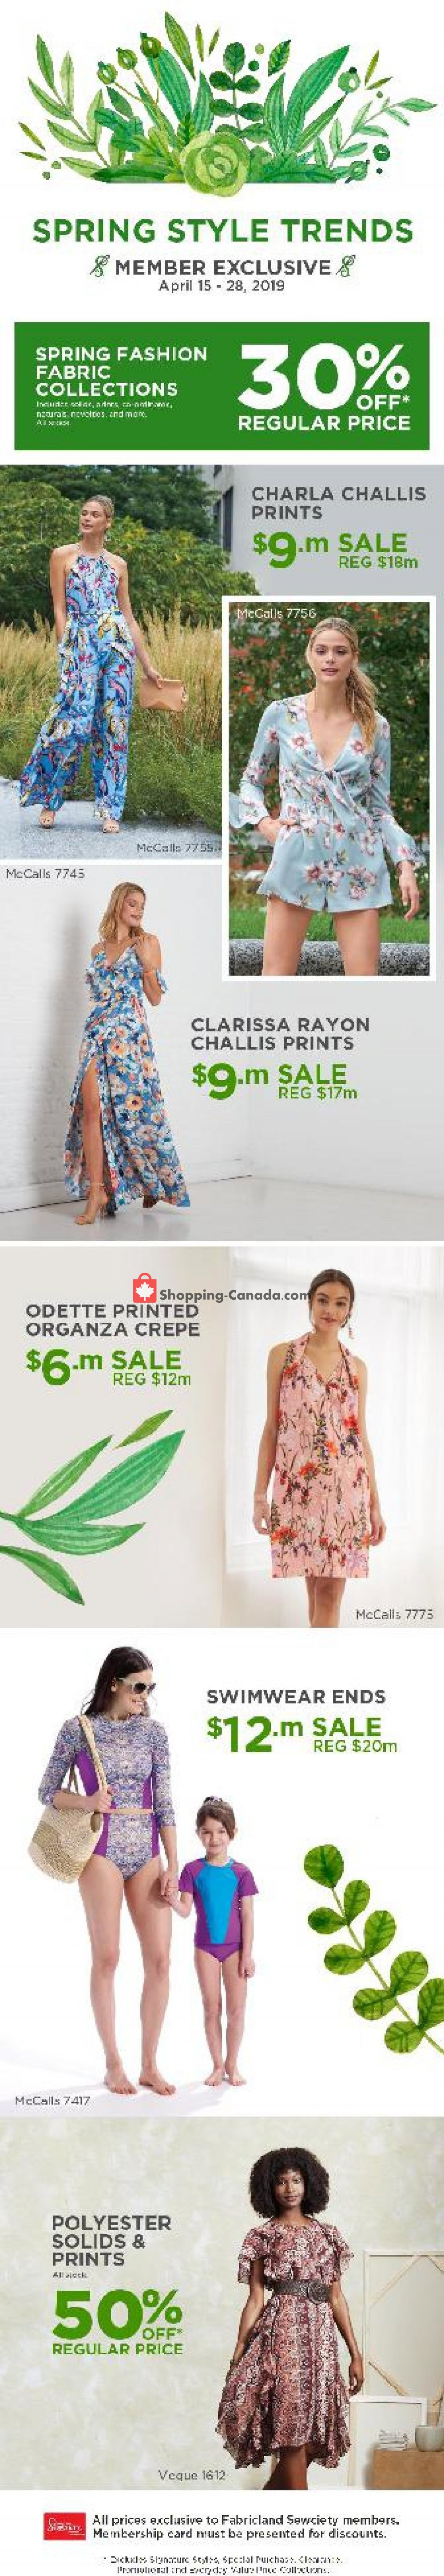 Flyer Fabricland Canada - from Monday April 15, 2019 to Sunday April 28, 2019